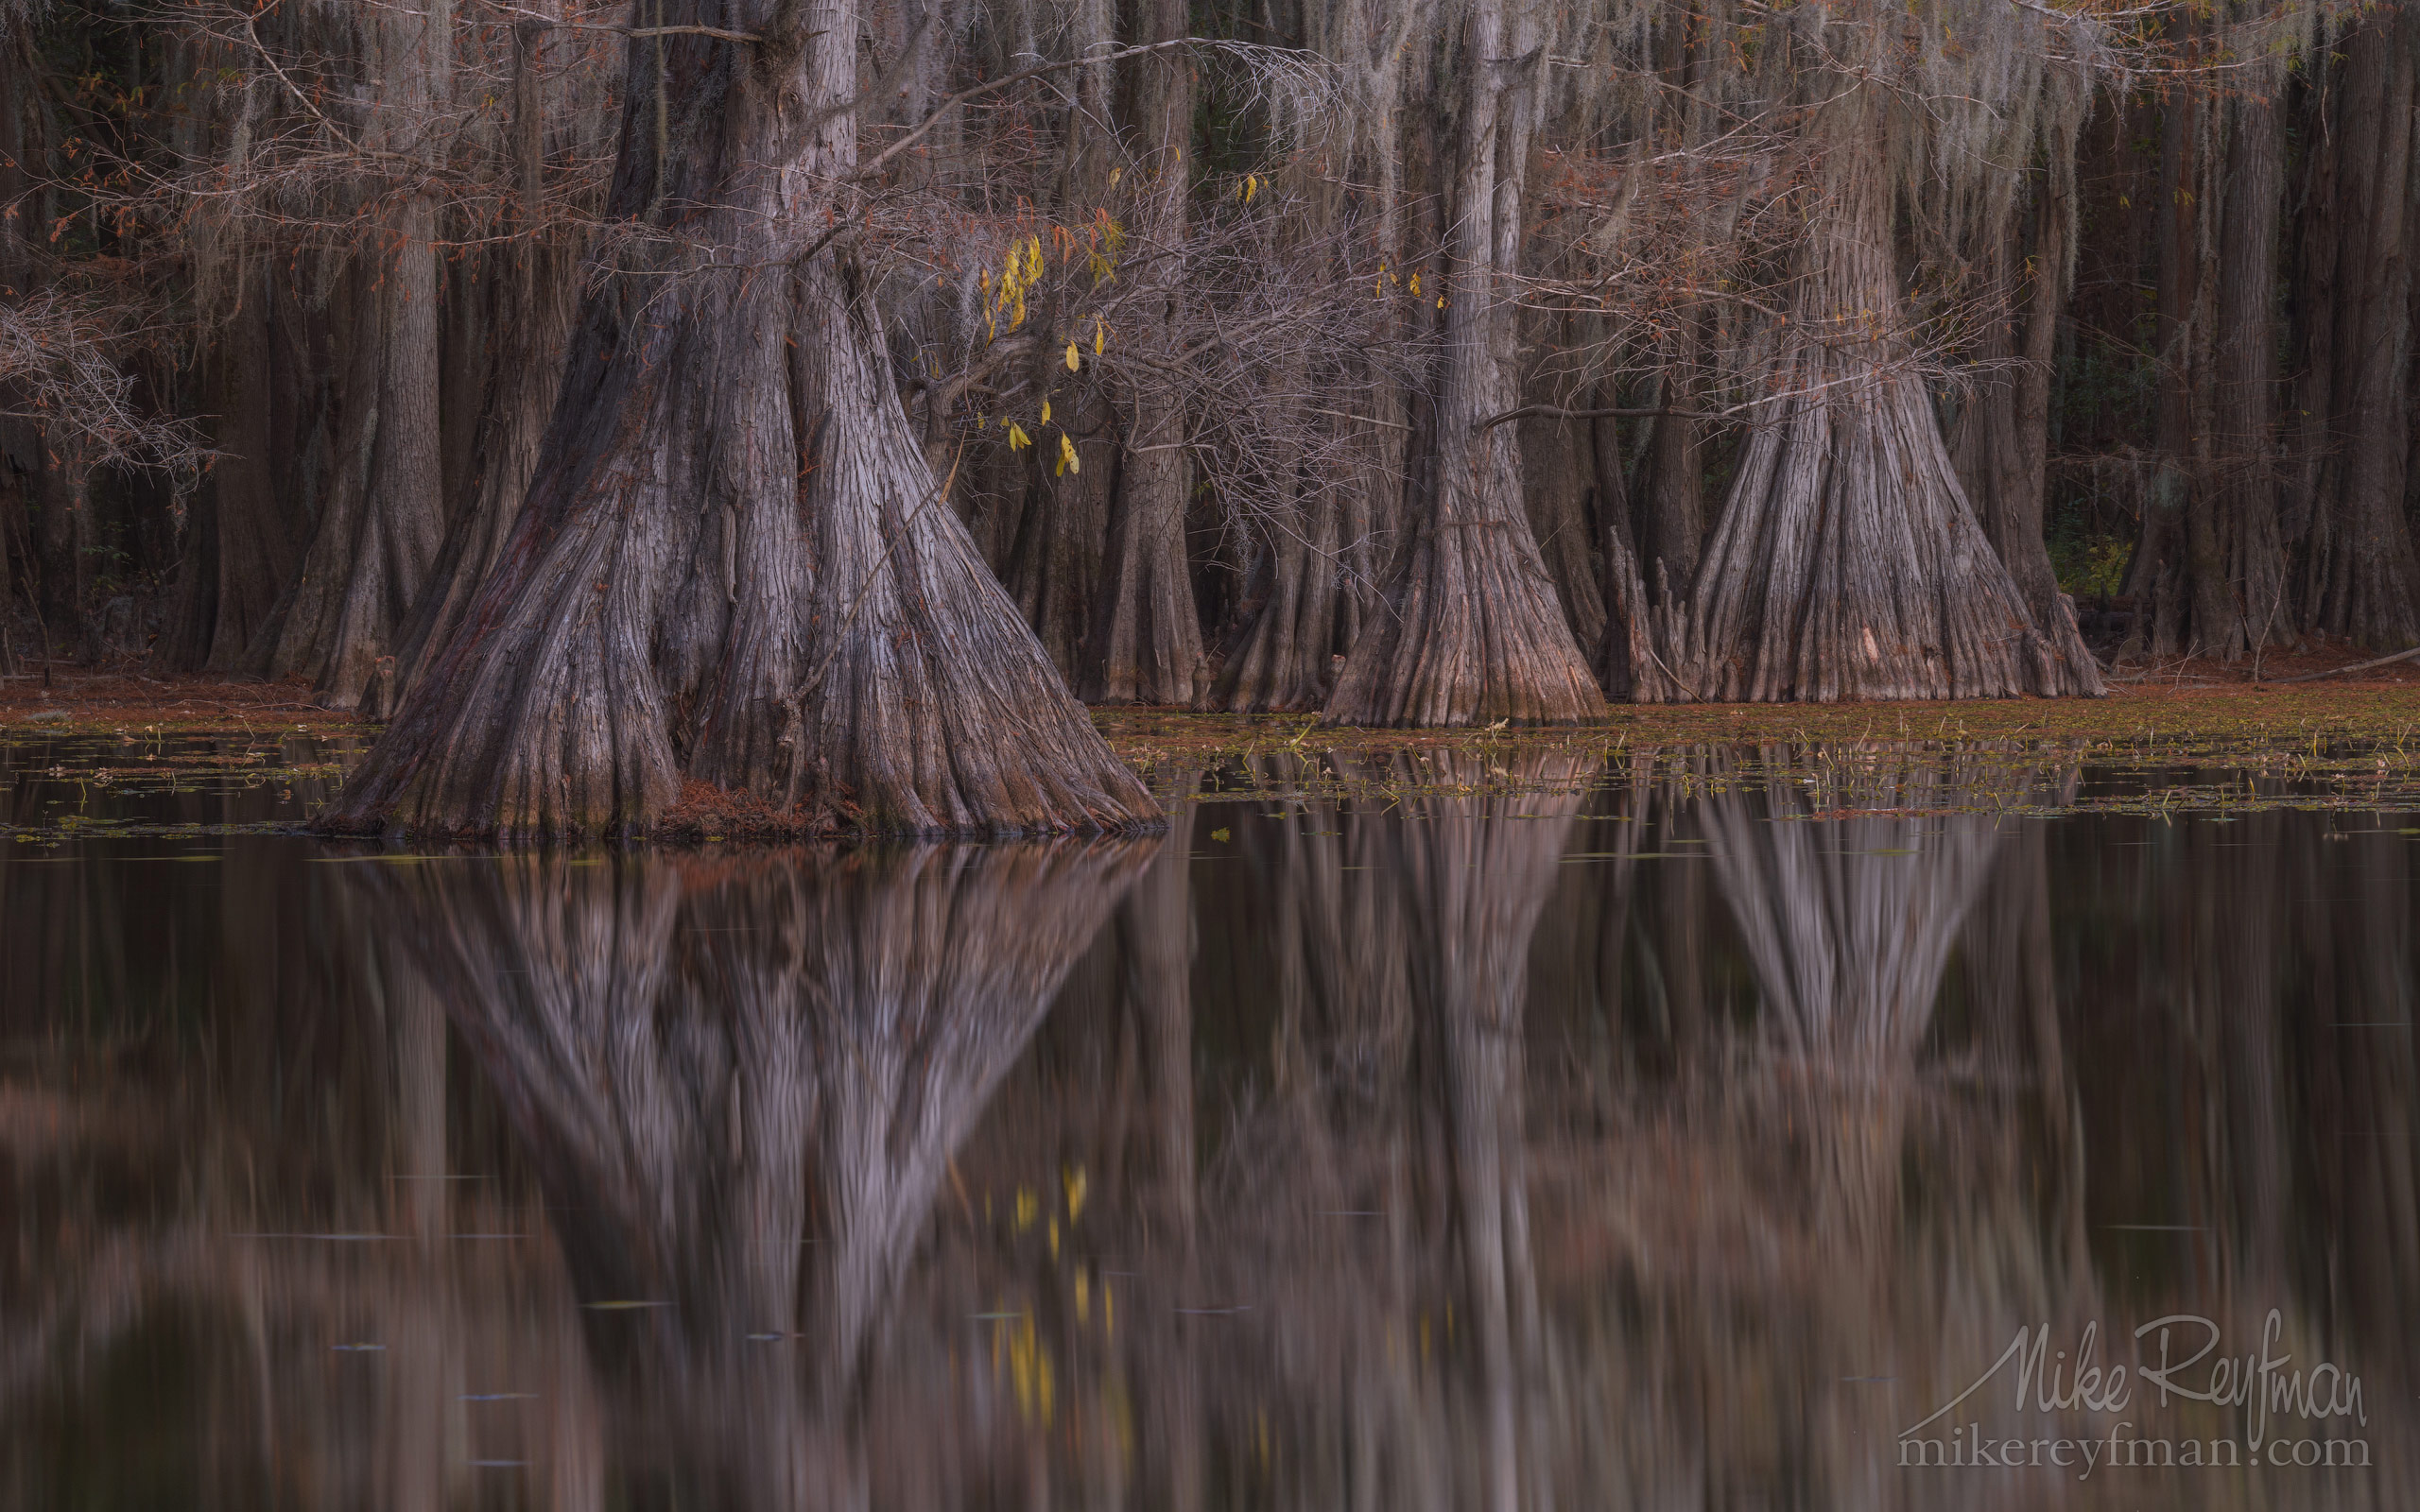 Bald Cypress trees in the swamp. Caddo Lake, Texas, US 022-LT1-50A3171.jpg - Bold Cypress and Tupelo Trees in the swamps of Atchafalaya River Basin. Caddo, Martin and Fousse Lakes. Texas/Louisiana, USA. - Mike Reyfman Photography